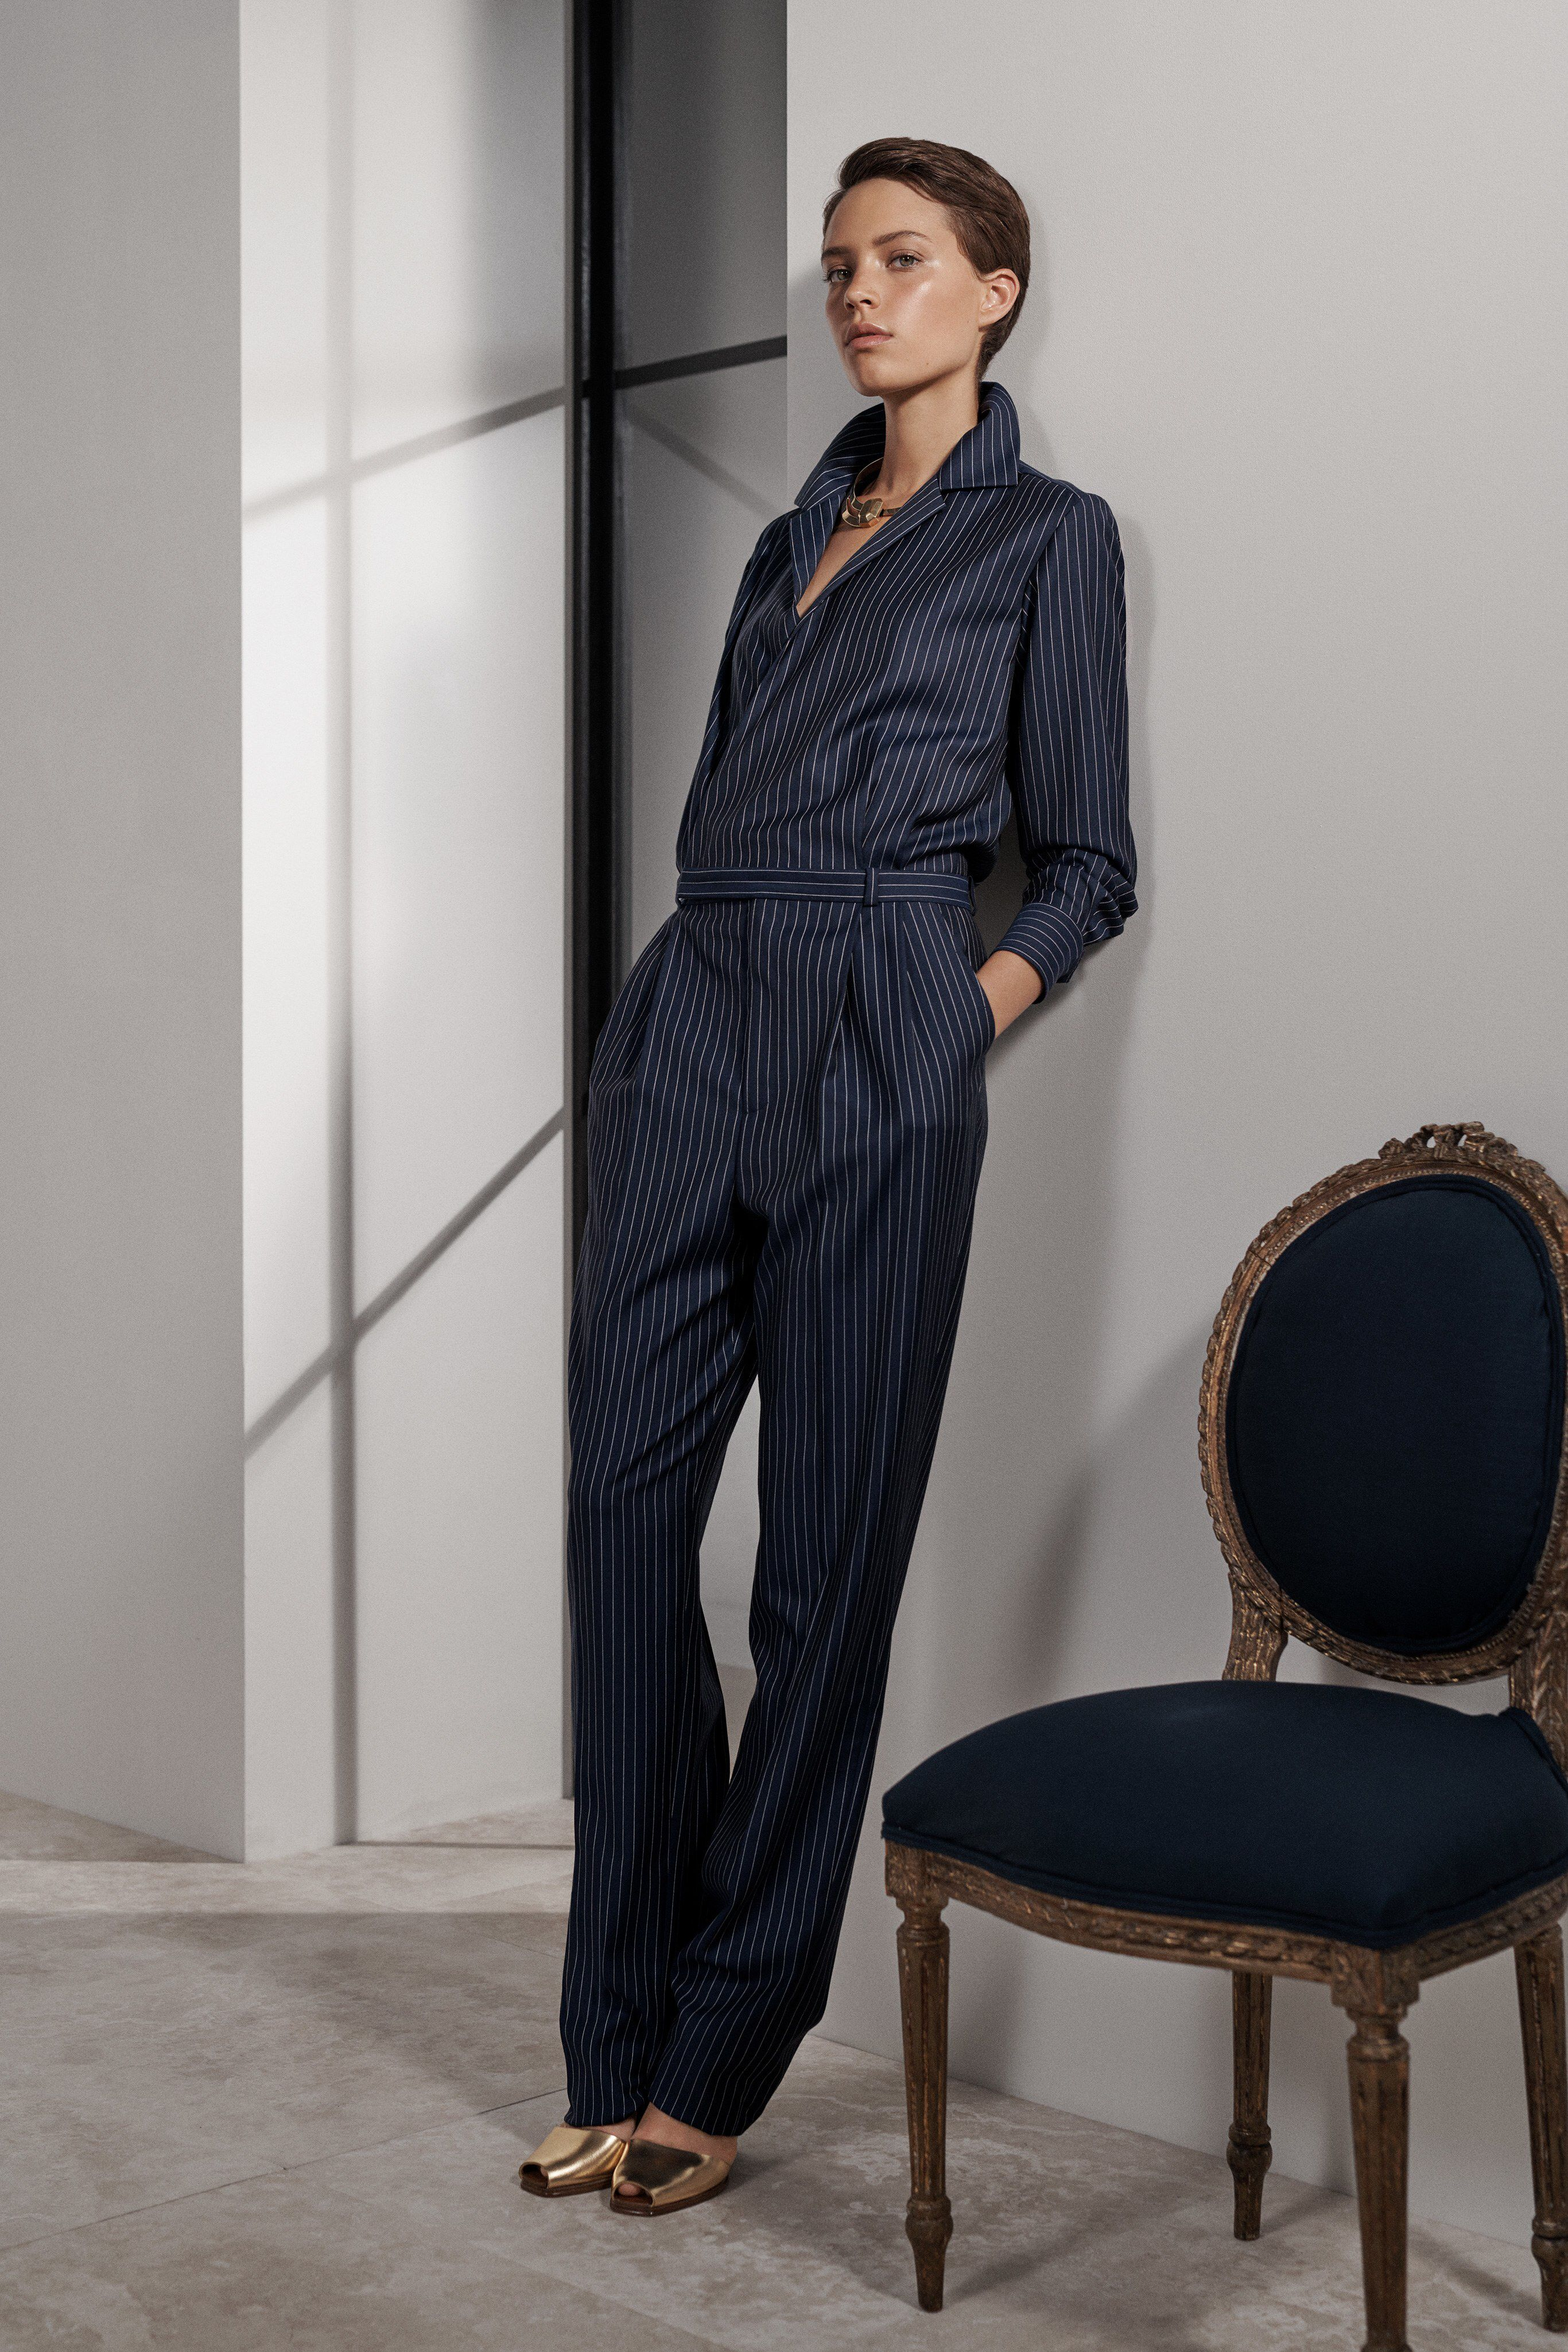 d00faa38b Ralph Lauren Resort 2019 Fashion Show Collection  See the complete Ralph  Lauren Resort 2019 collection. Look 7